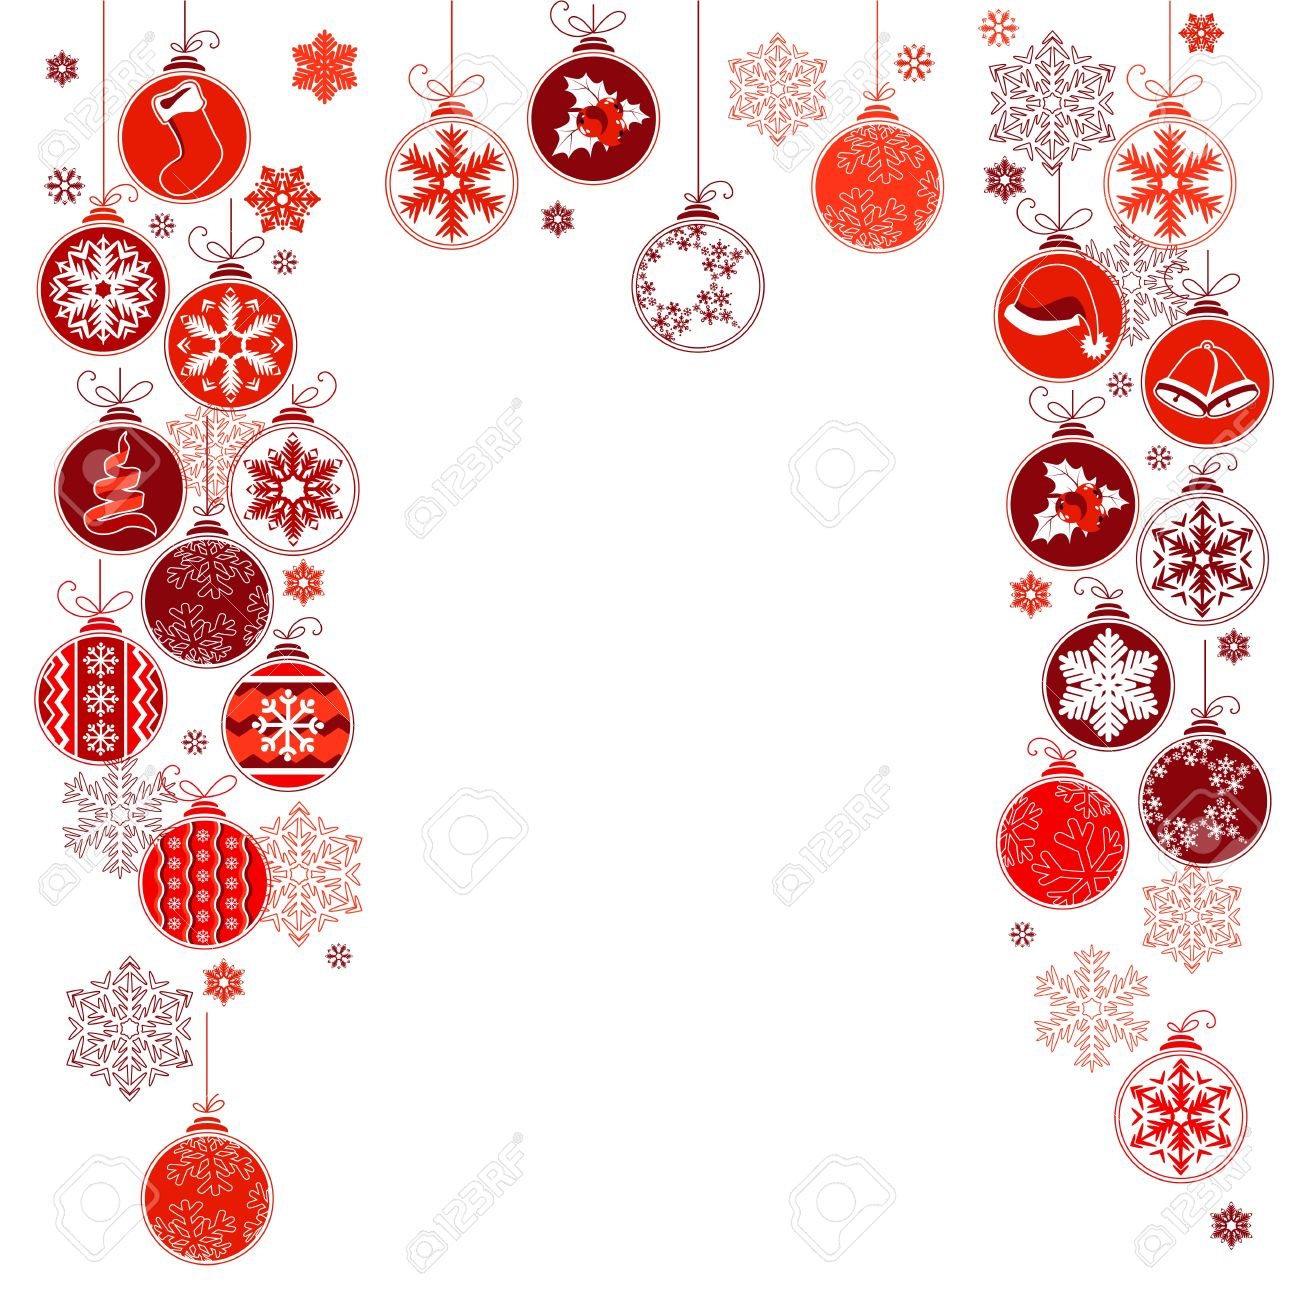 Blank Christmas Frame With Hanging Balls Royalty Free Cliparts ...